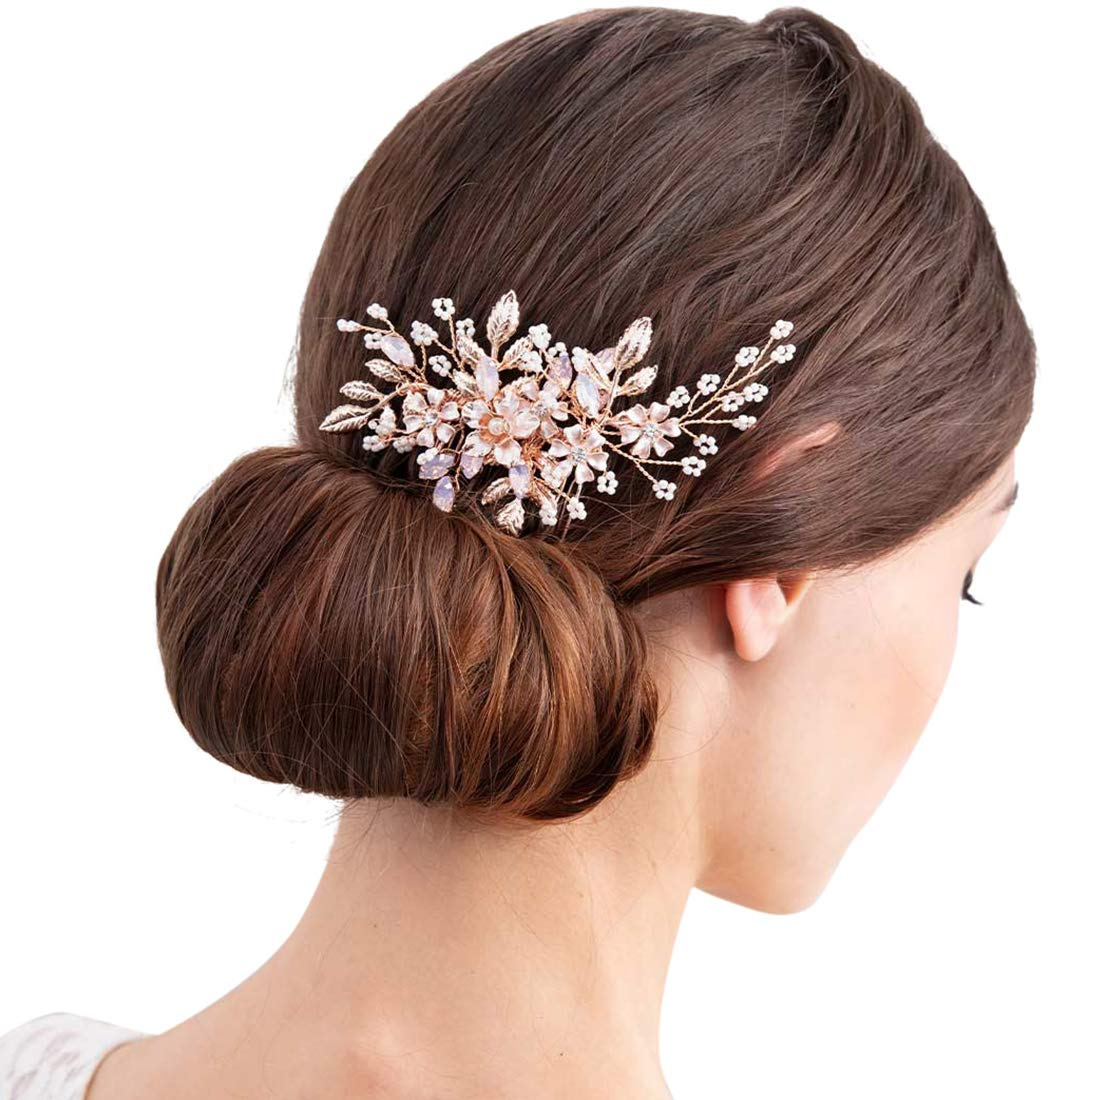 SWEETV Rose Gold Wedding Hair Comb Bridal Hair Accessories Flower Hair Clip Comb Head Pieces for Women by SWEETV